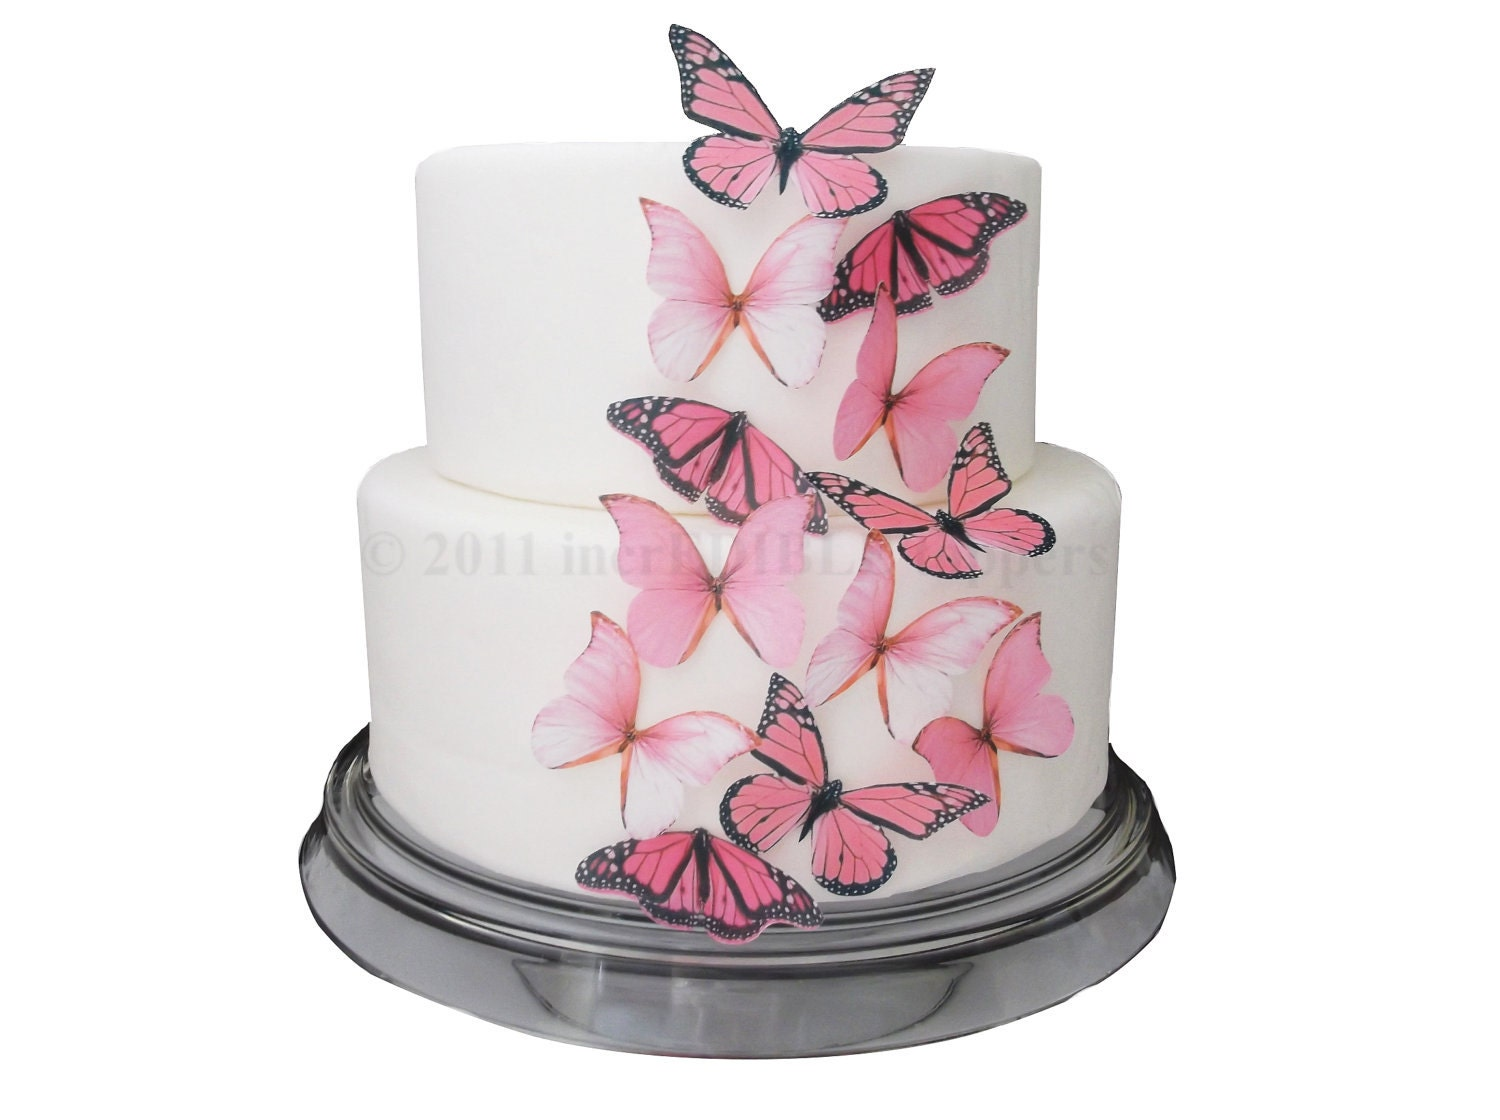 CAKE DECORATIONS Edible Butterflies 12 Large by ...